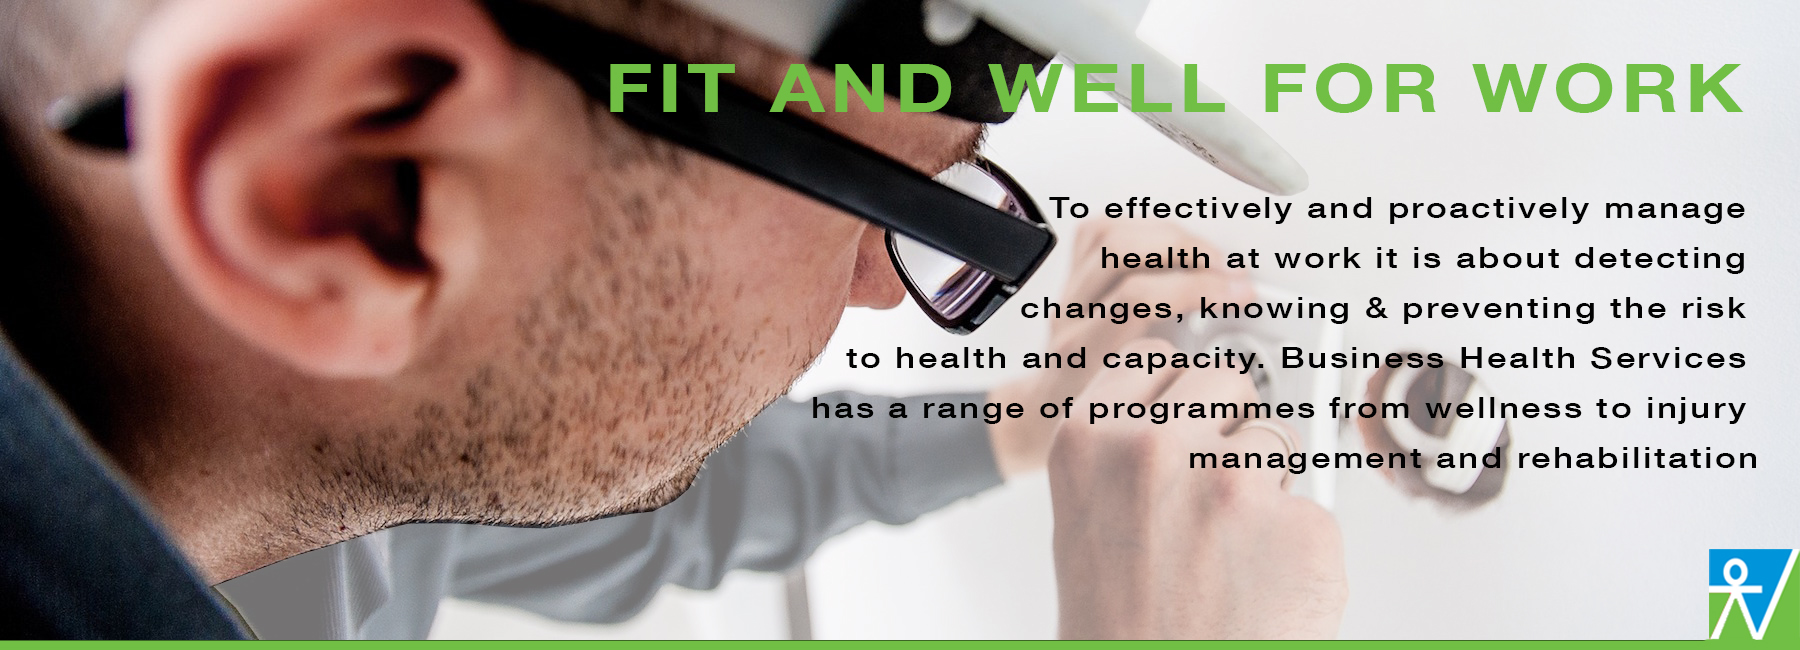 To effectively and proactively manage health at work it is about detecting changes, knowing & preventing the risk to health and capacity. BHS has a range of programmes from wellness to injury management and rehabilitation - Auckland, New Zealand